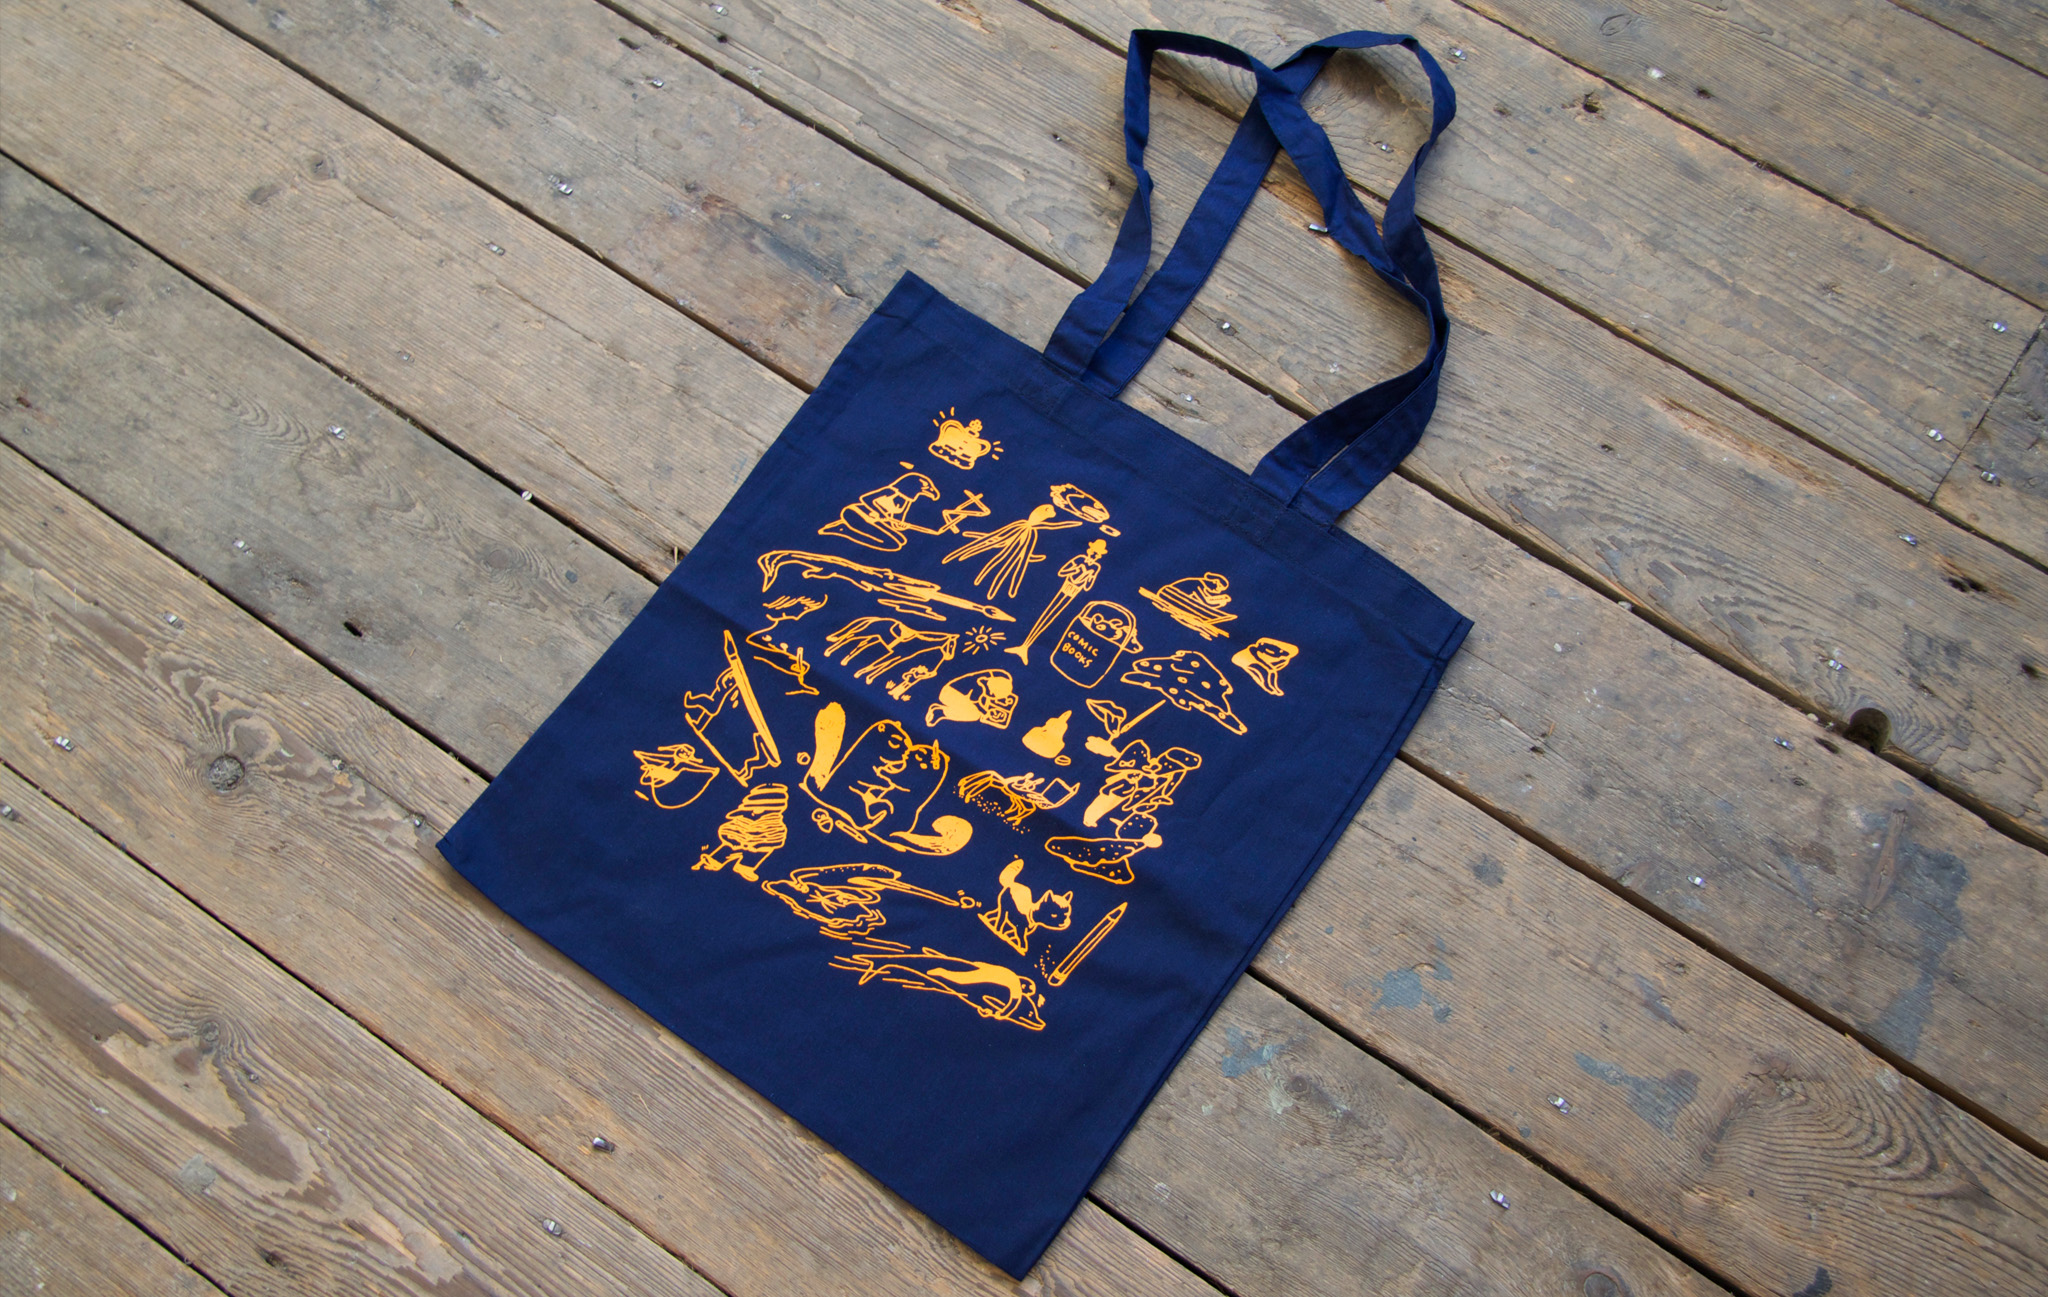 Limited Edition Jillian Tamaki ELCAF Tote Bag